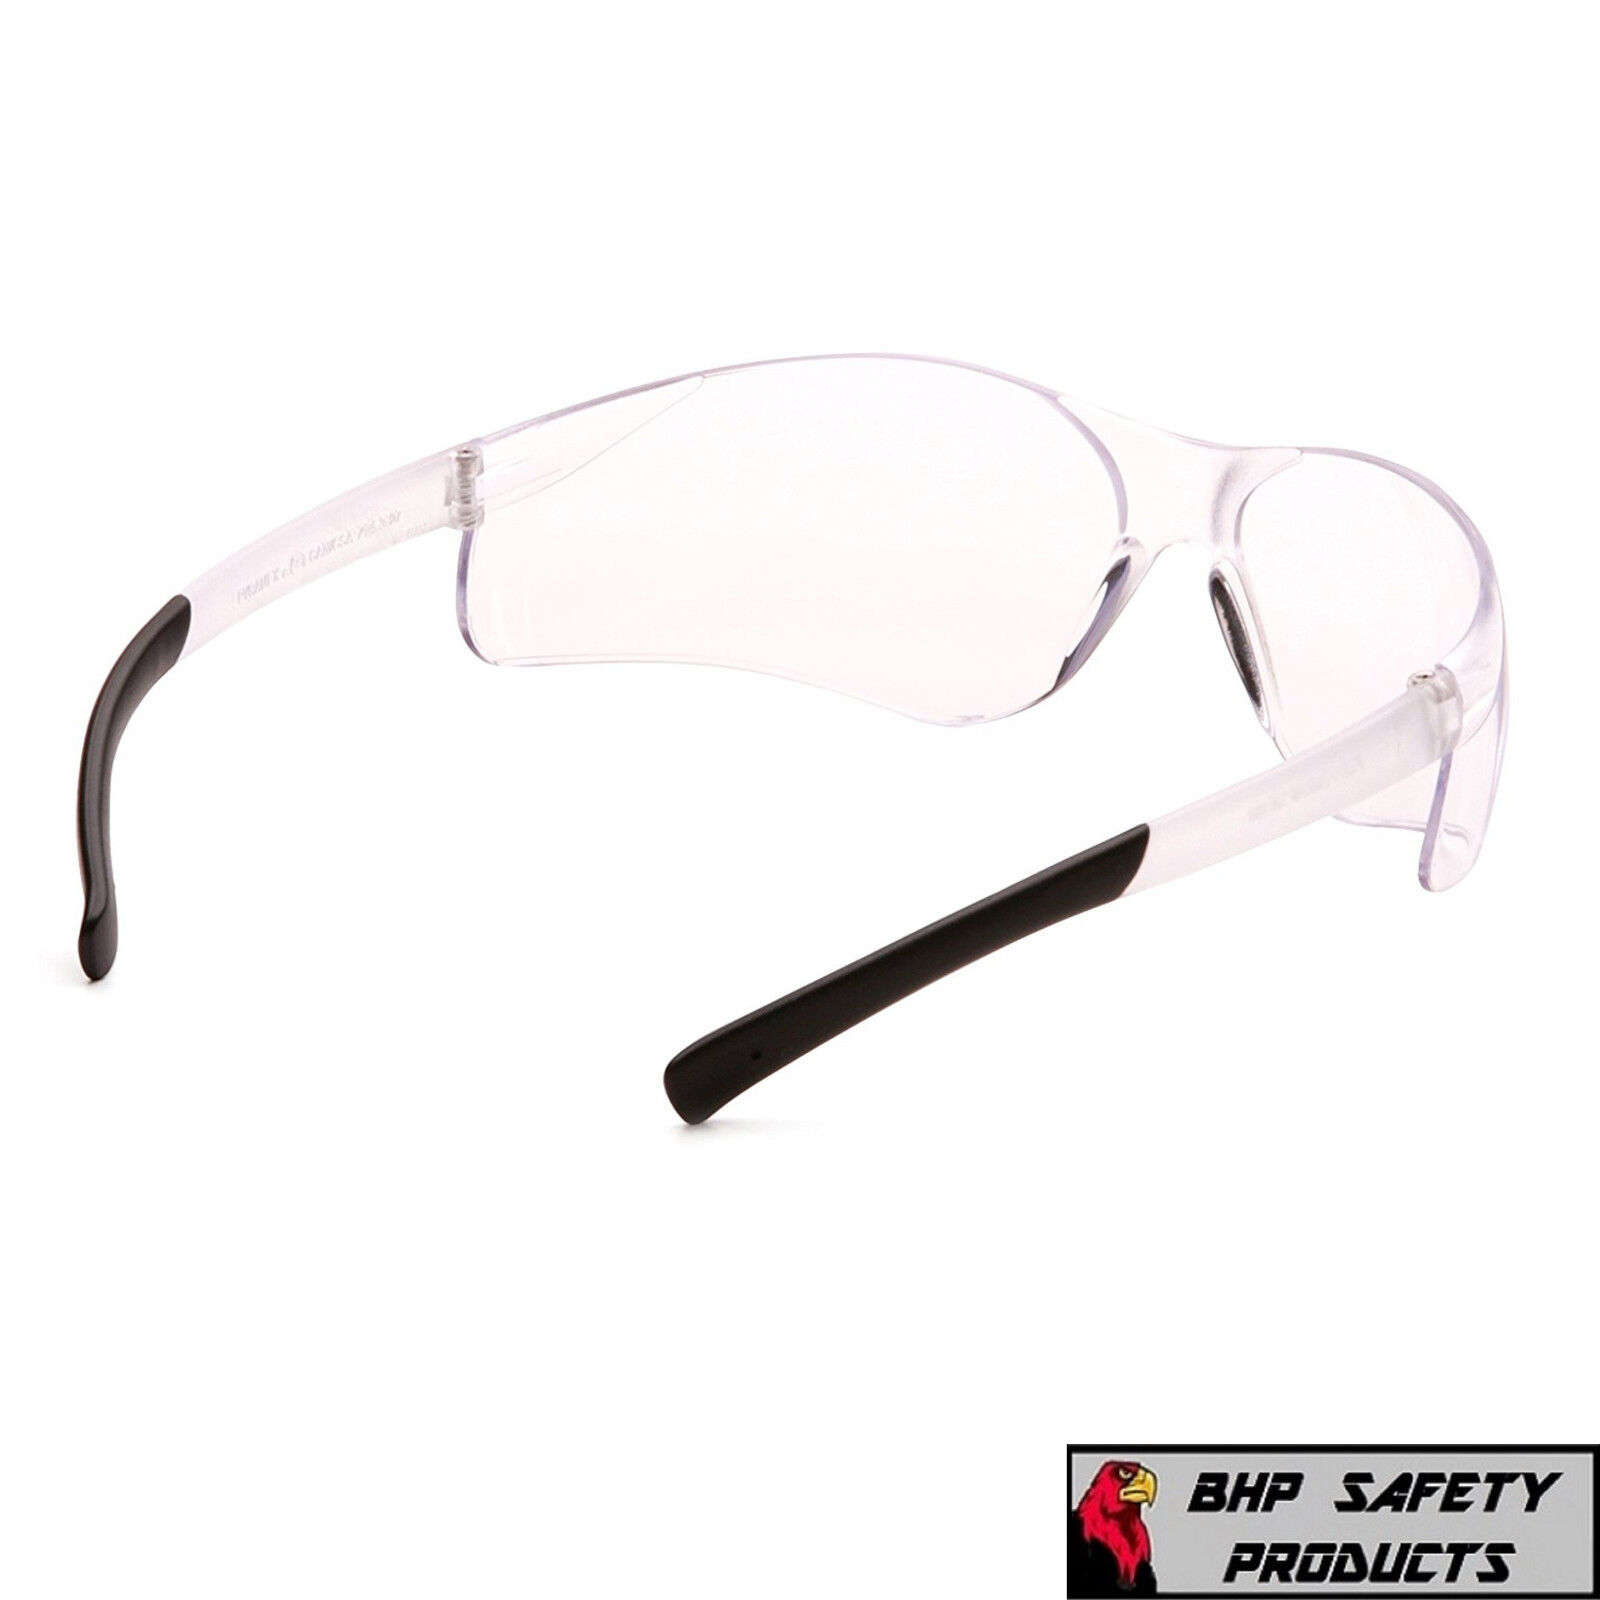 PYRAMEX ZTEK SAFETY GLASSES CLEAR LENS SPORT WORK EYEWEAR S2510S (12 PAIR) Z87+